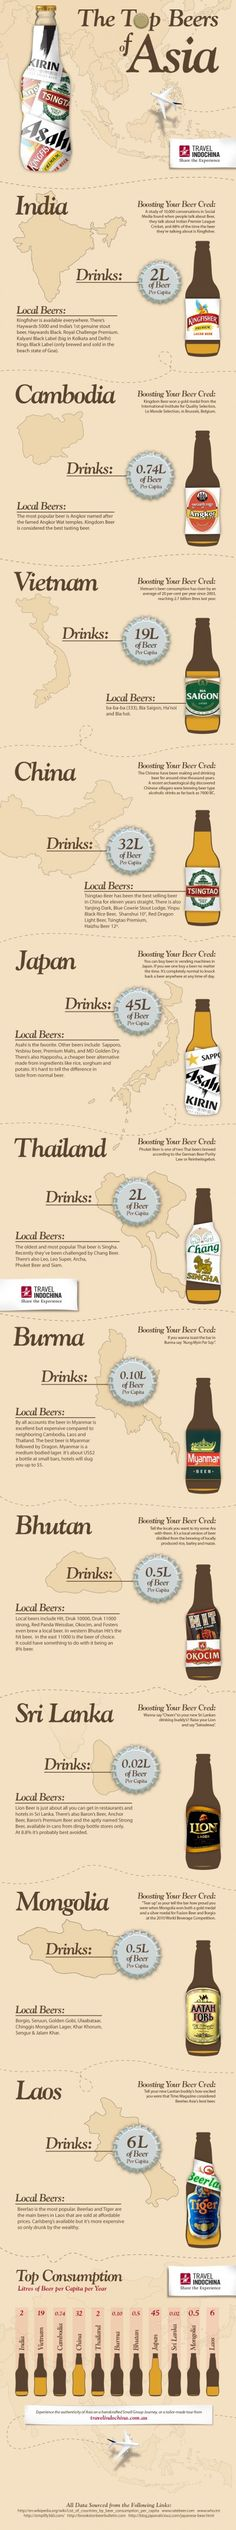 Top Beers of Asia - cool infographic!